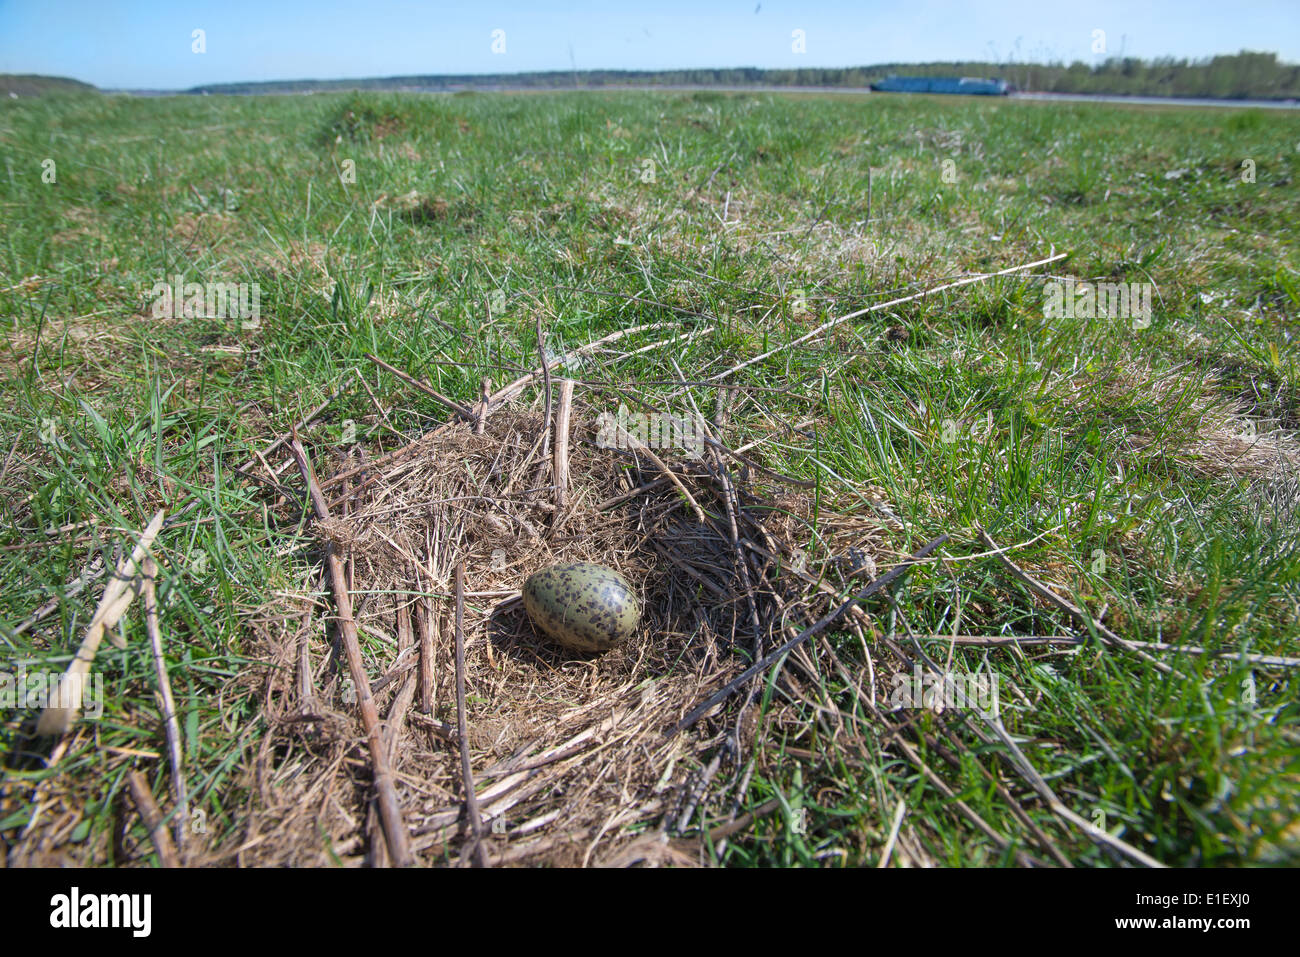 The nest of the Common Gull (Larus canus) in the wild. - Stock Image